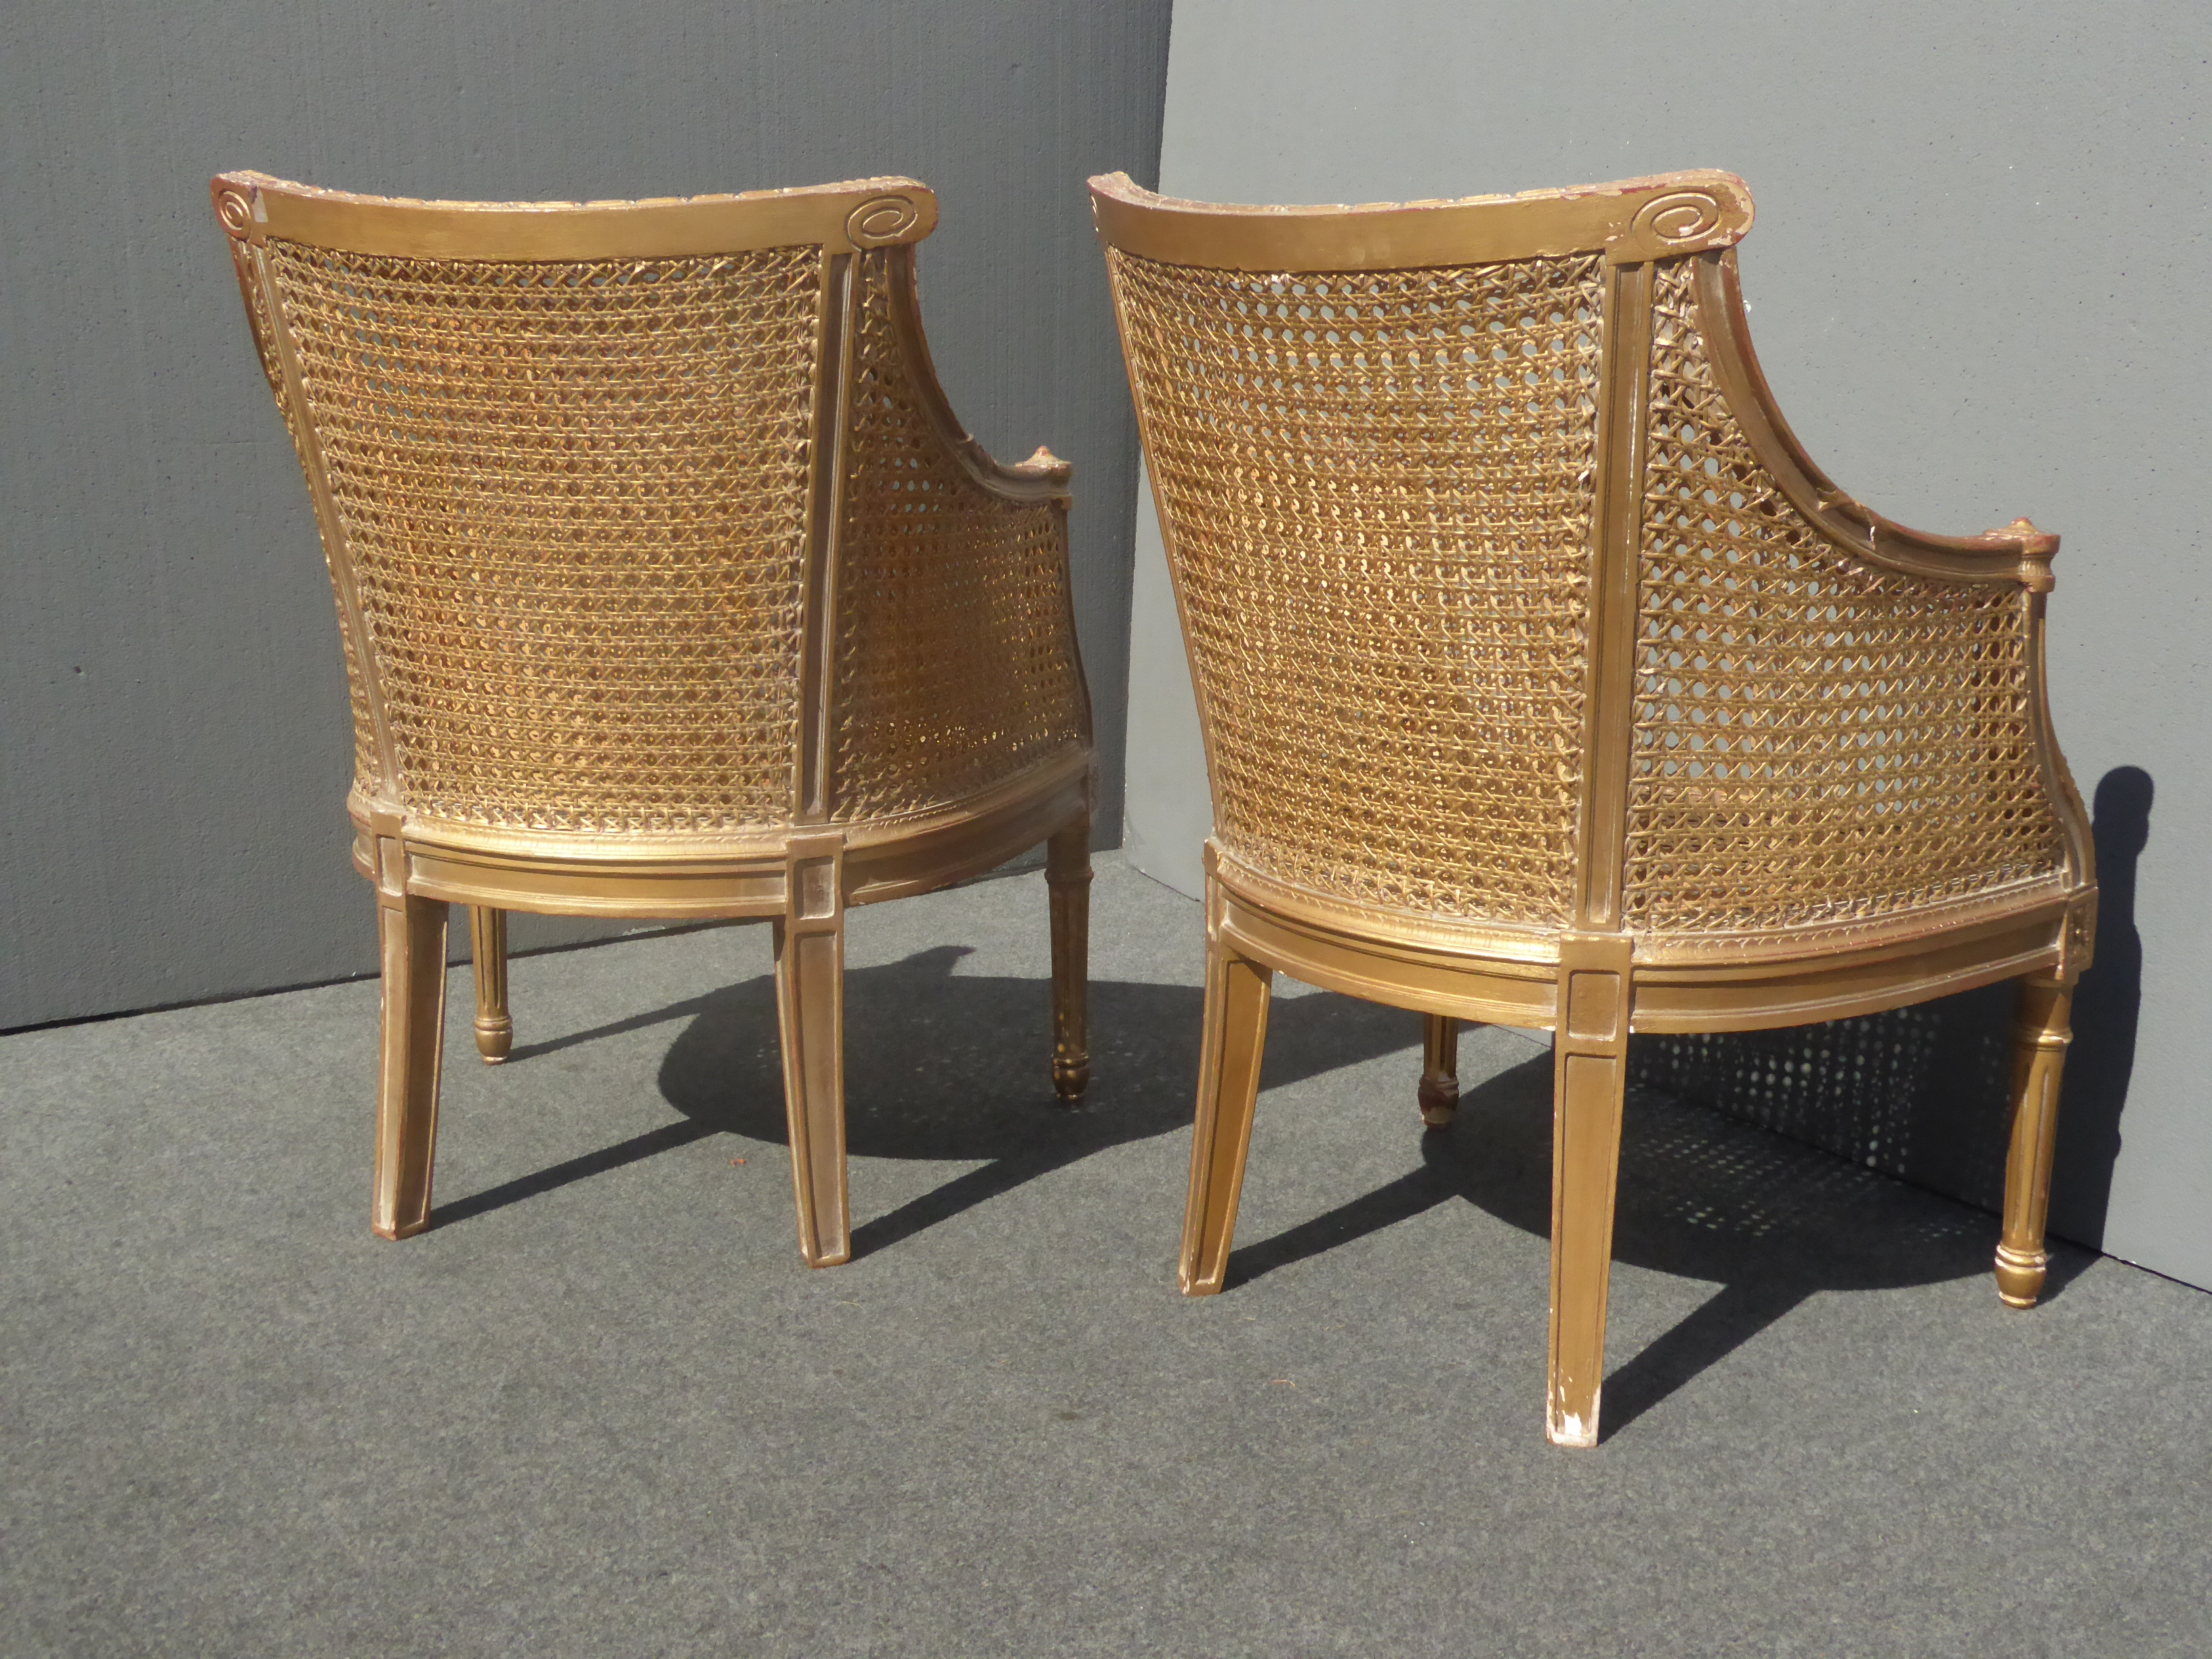 French Cane Chair french rococo gold cane chairs - a pair | chairish